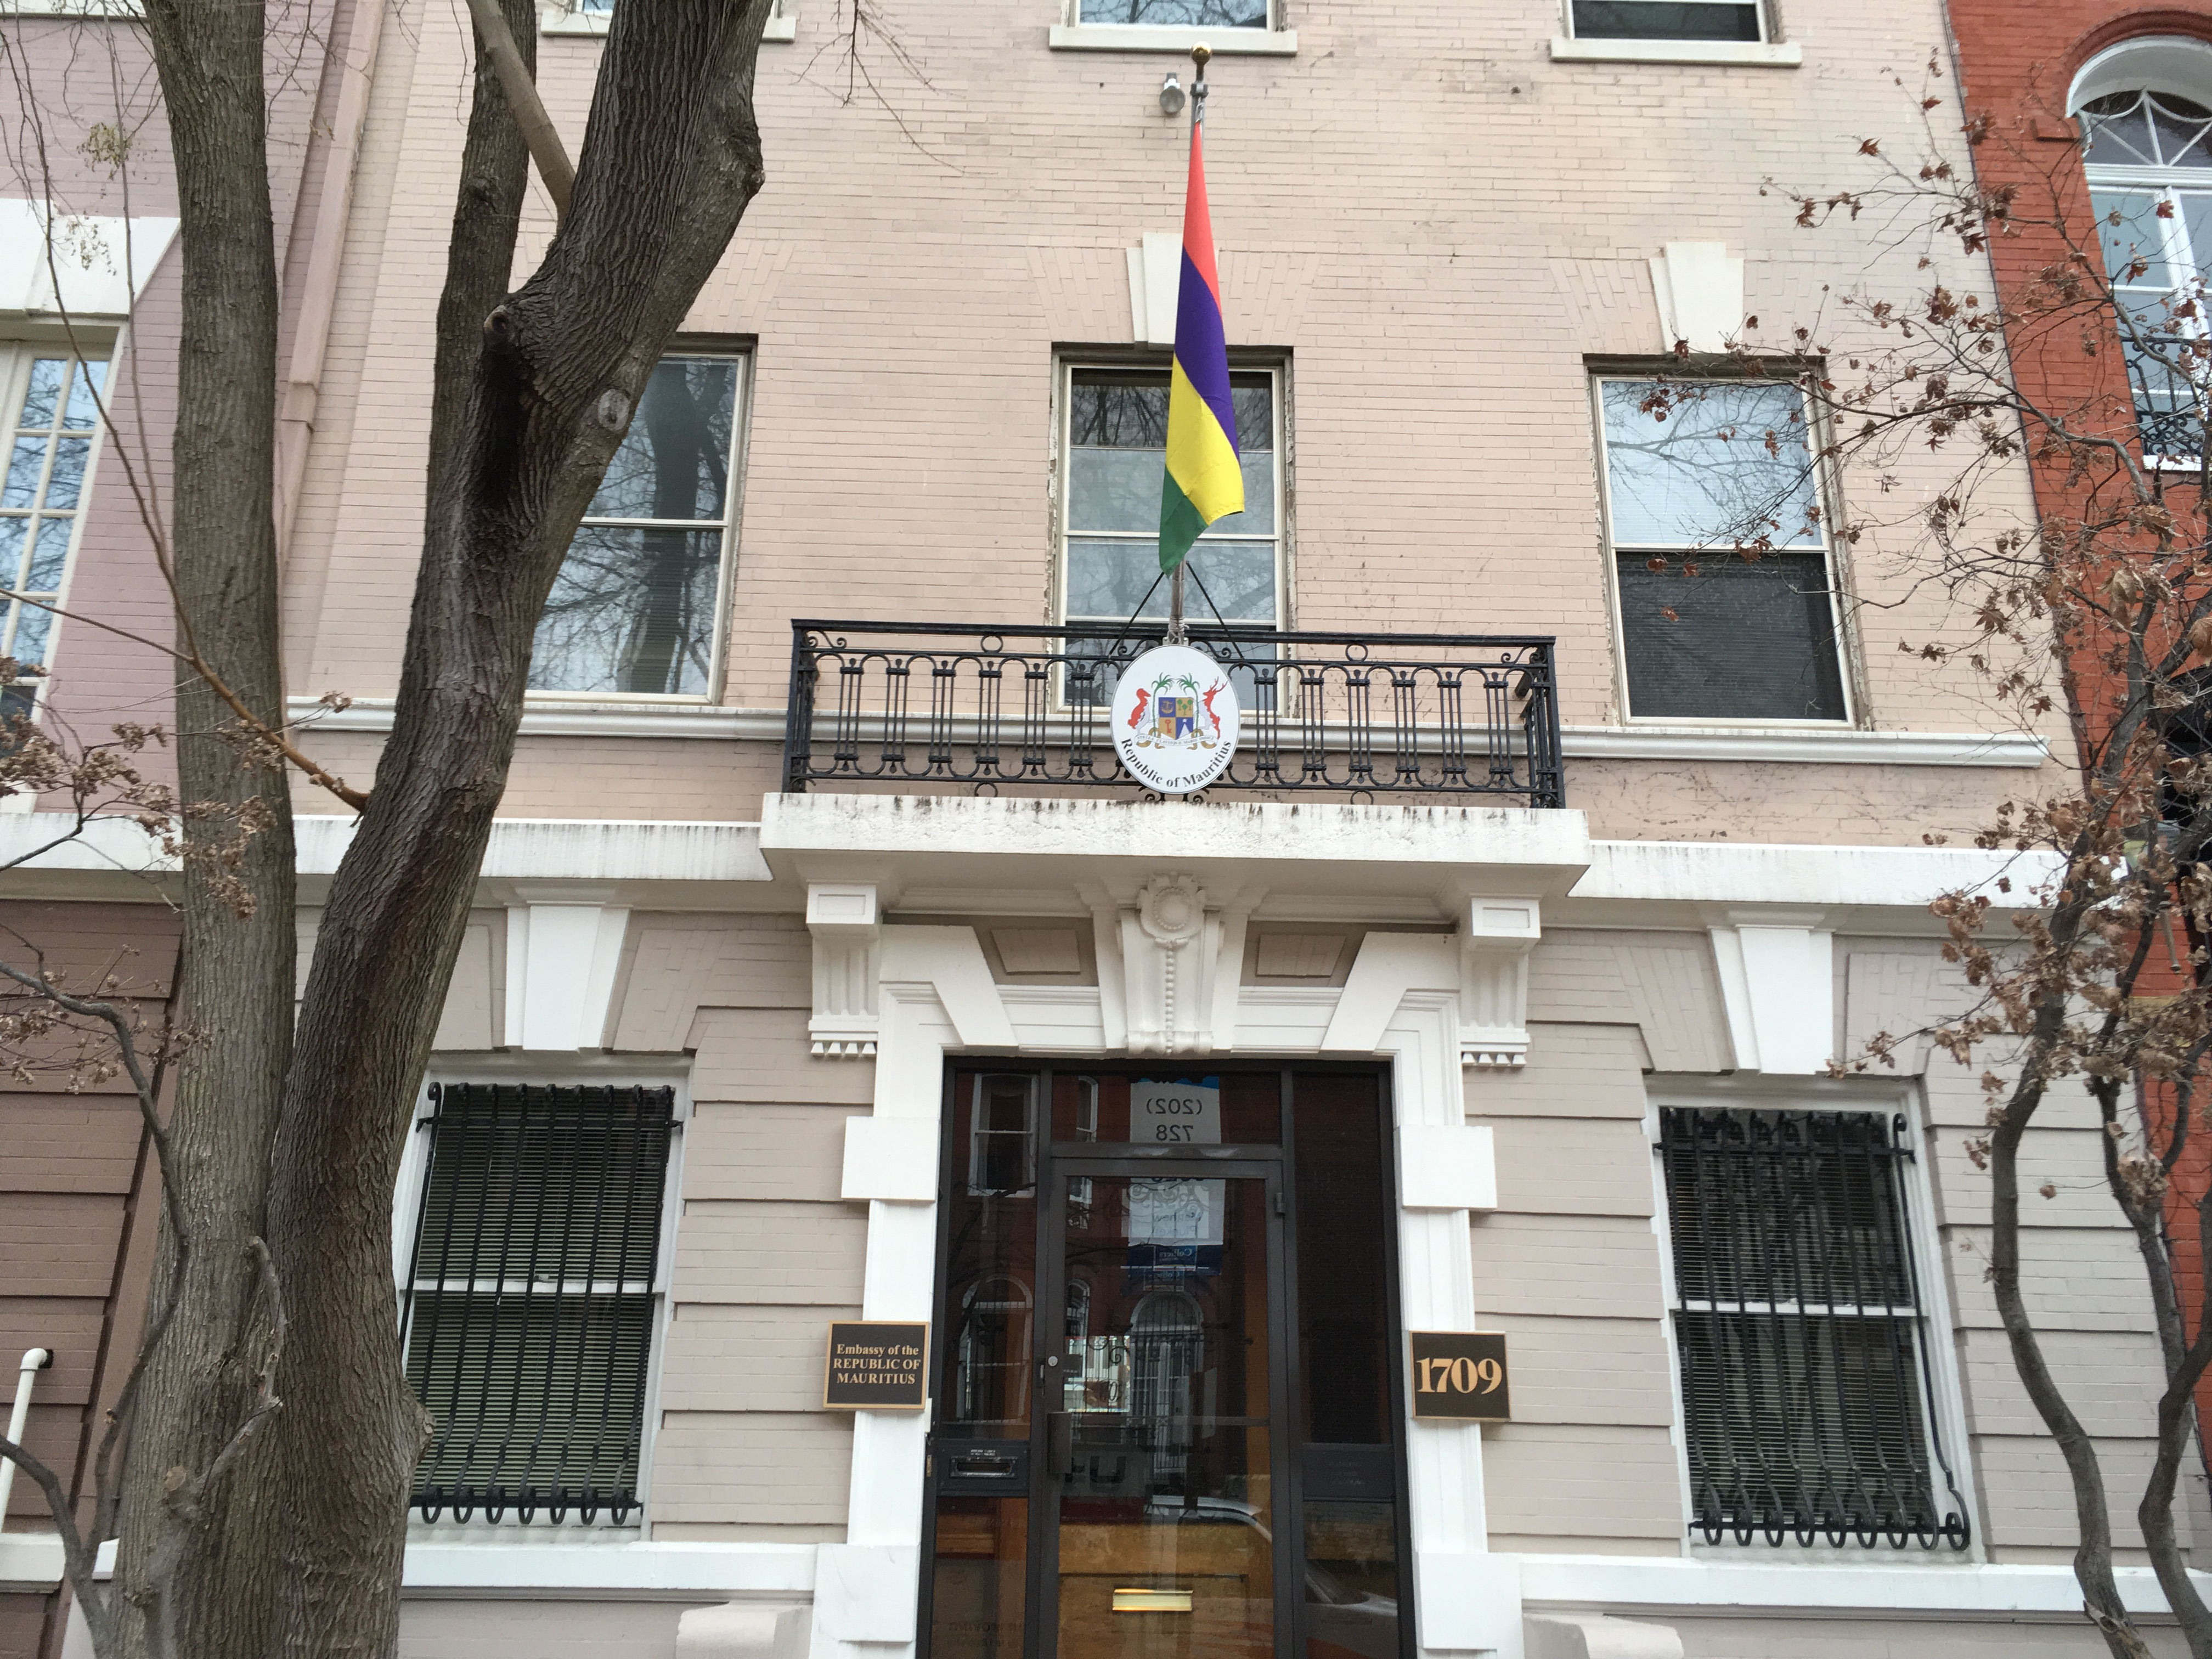 Real Estate & Homes For Sale Near The Embassy of Mauritius in Washington, DC. Artyom Shmatko Luxury Real Estate Agent